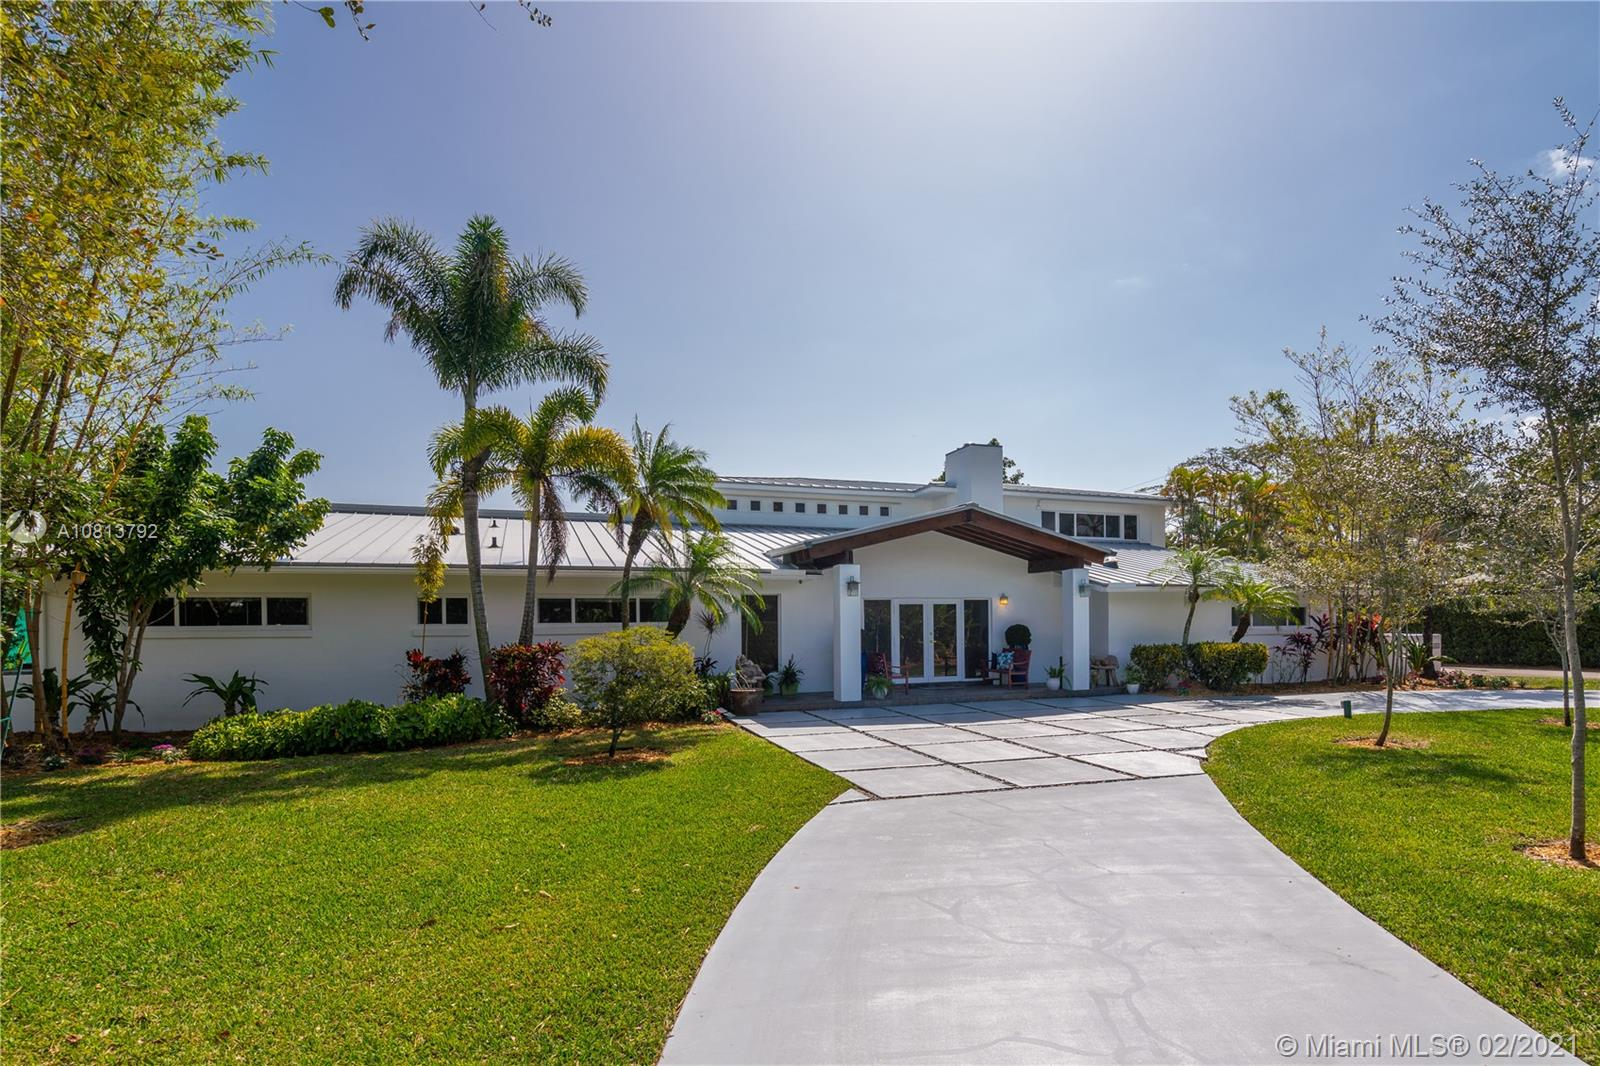 6460 SW 111th Dr, Coral Gables, Florida